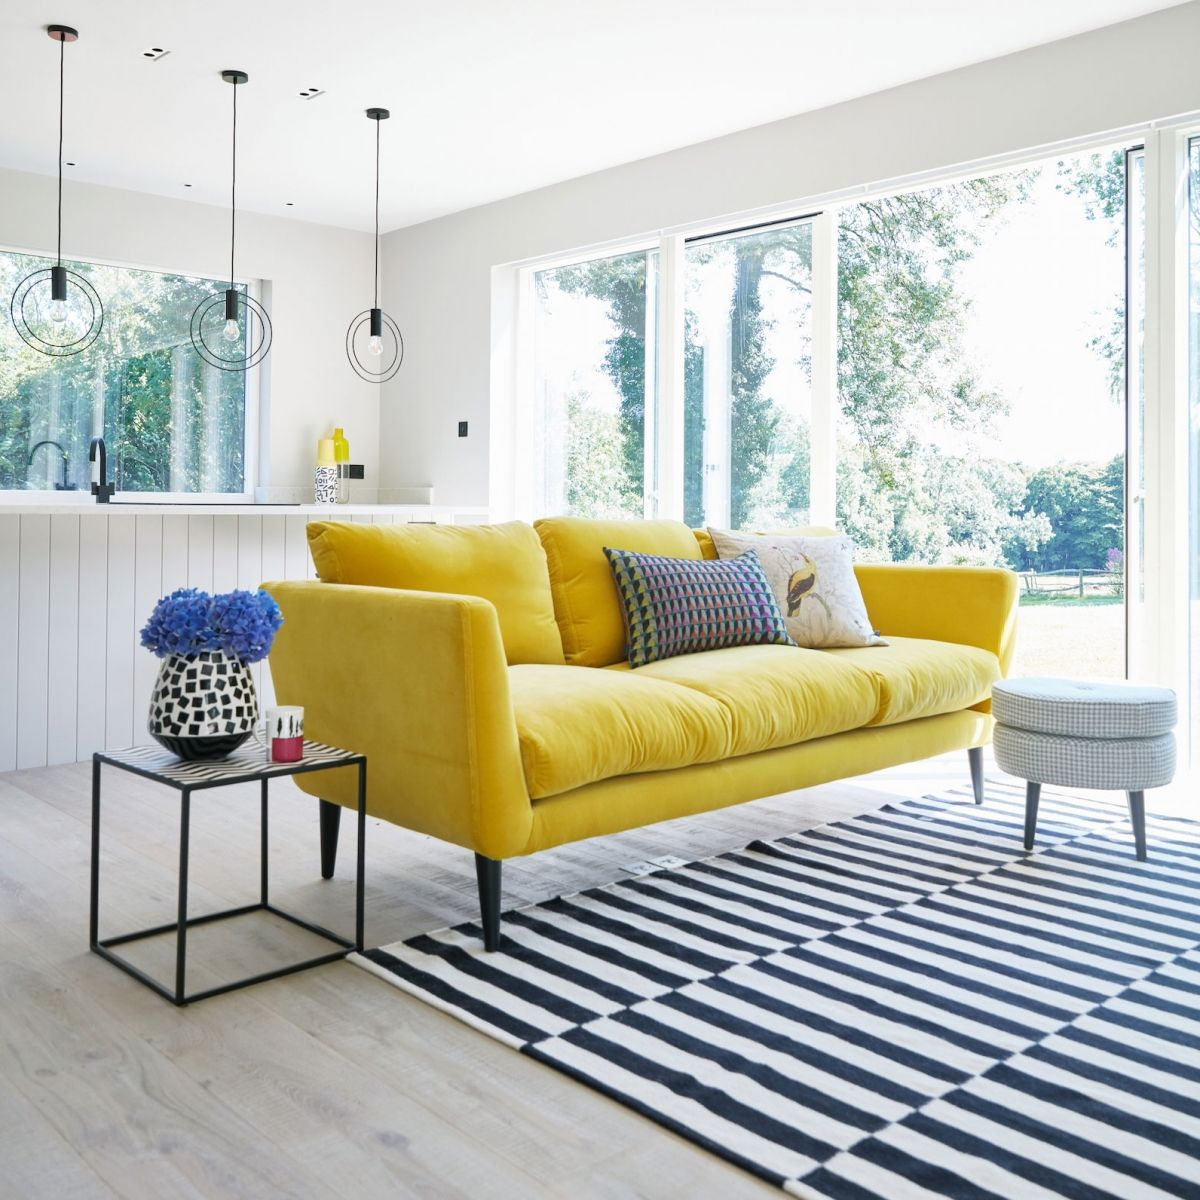 10+ Most Popular Yellow Sofa Living Room